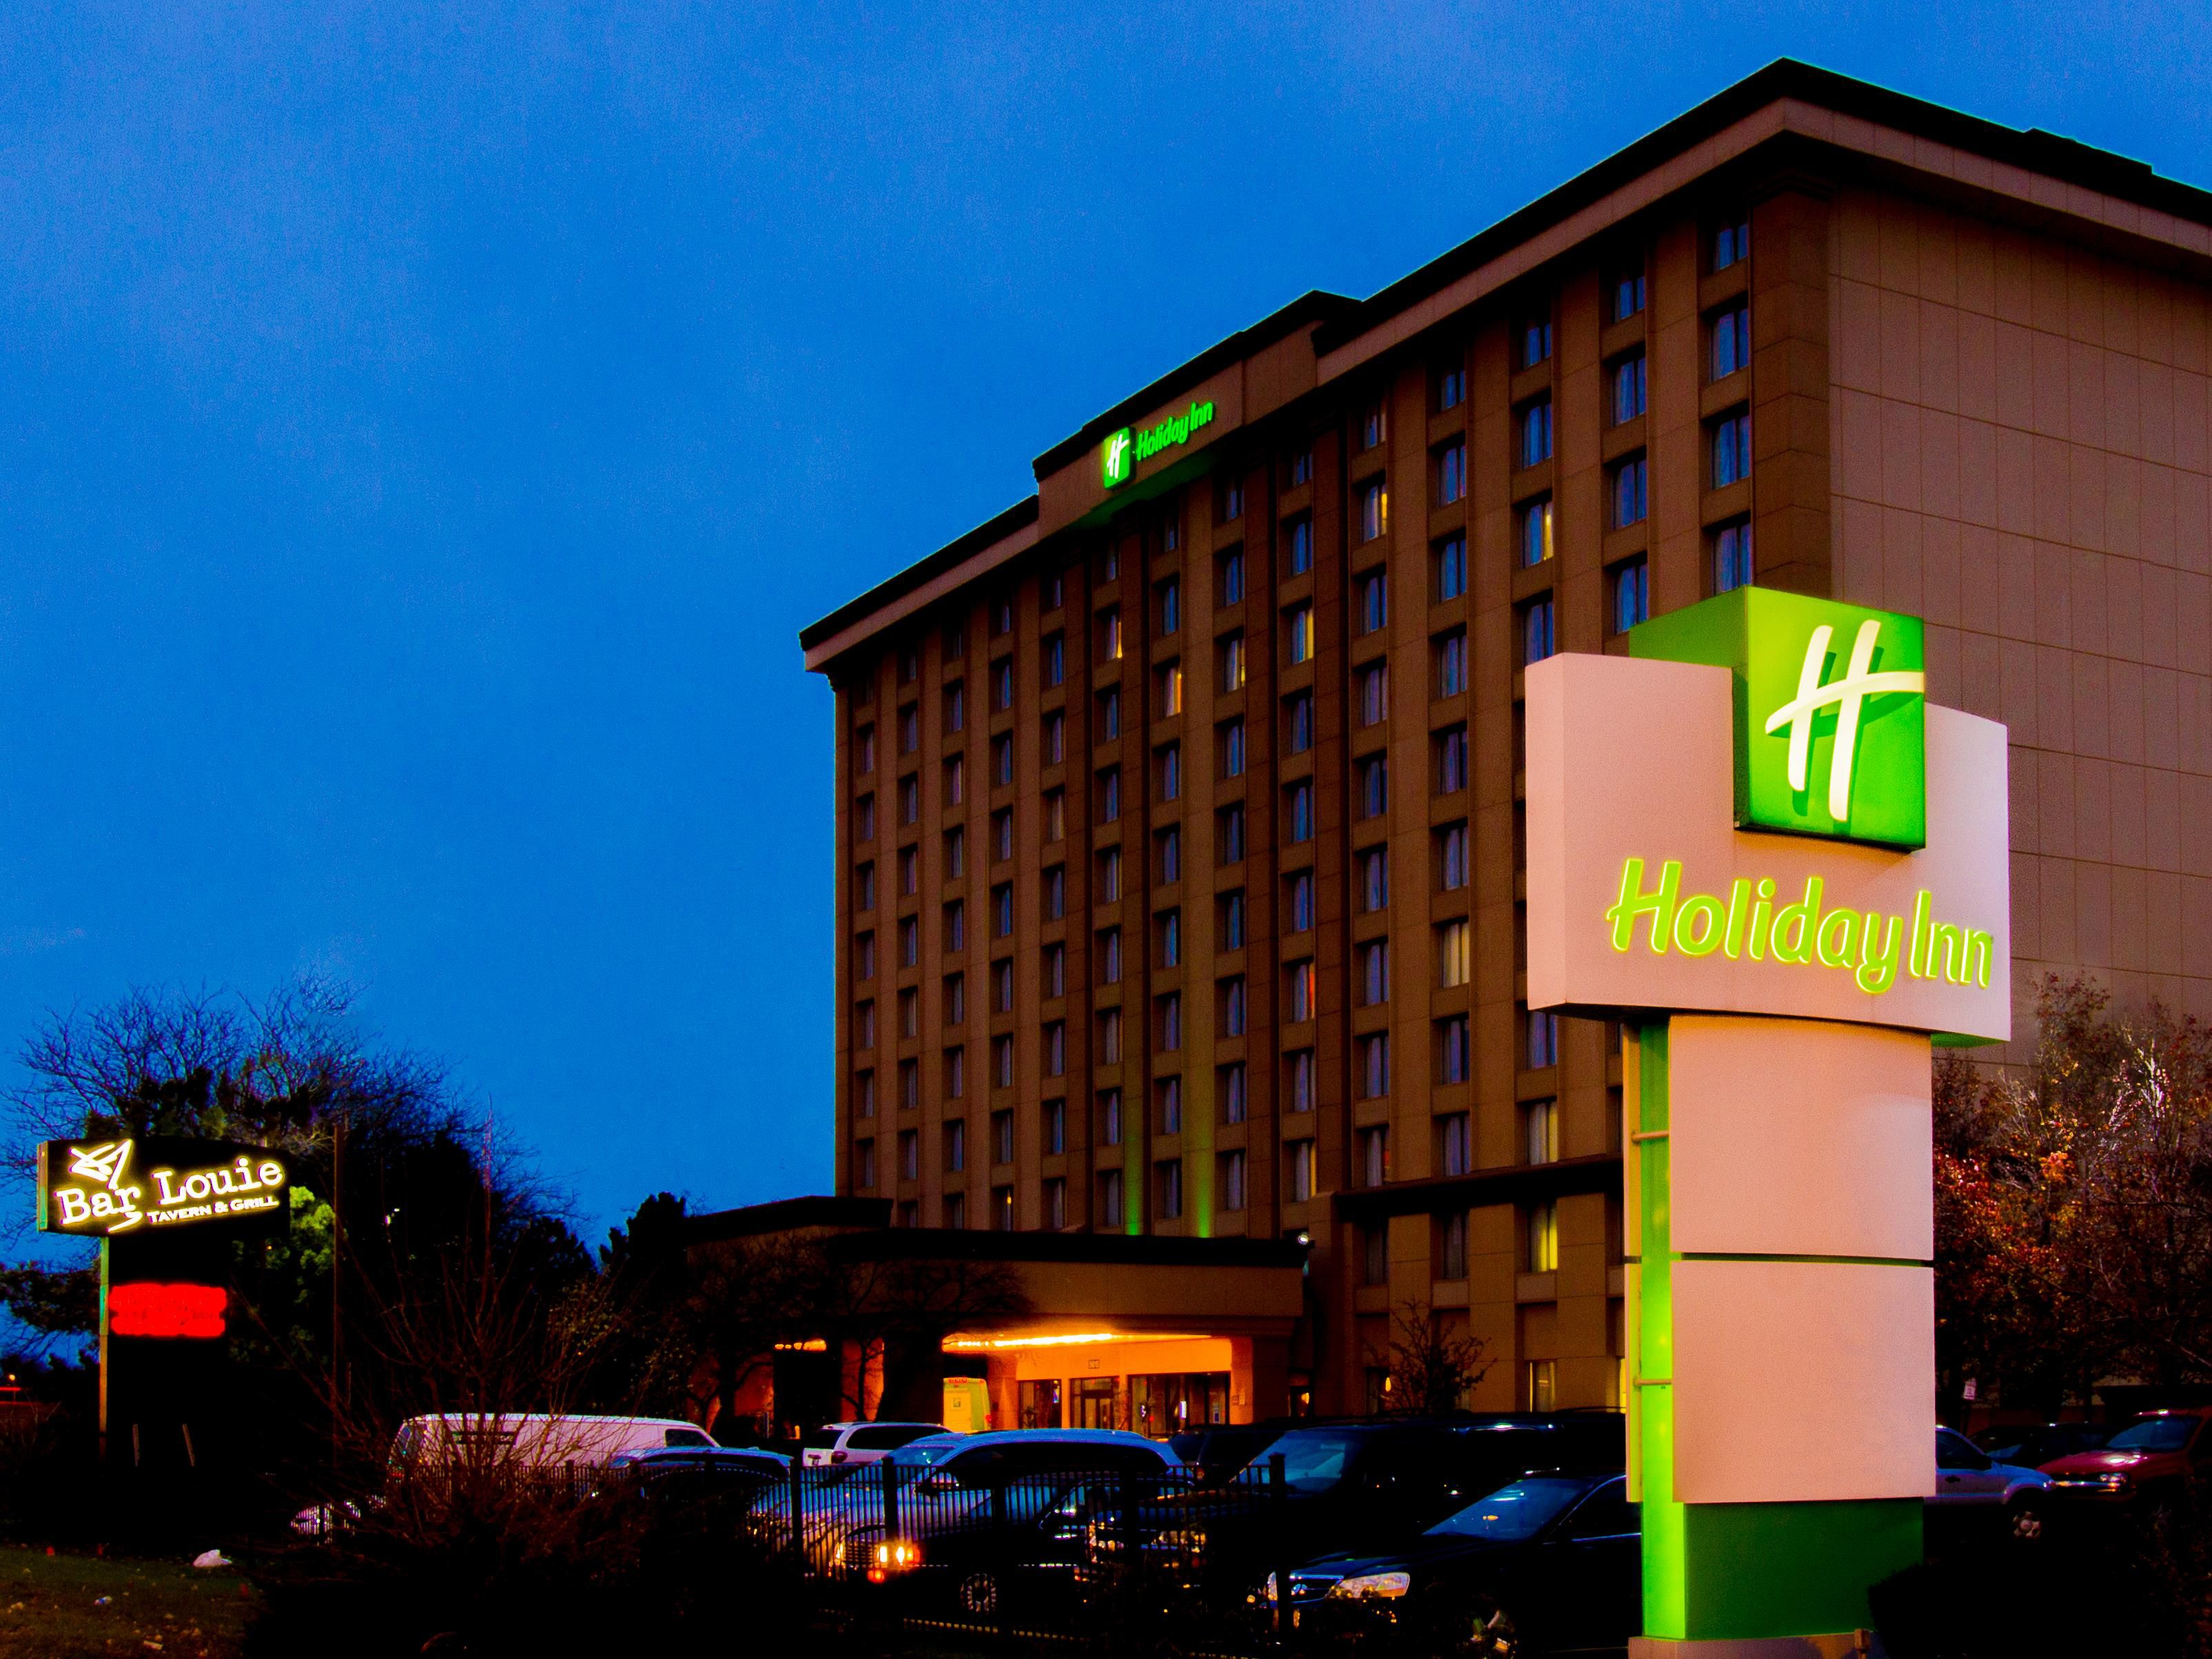 Holiday Inn Chicago O'Hare Airport Hotel (ORD)